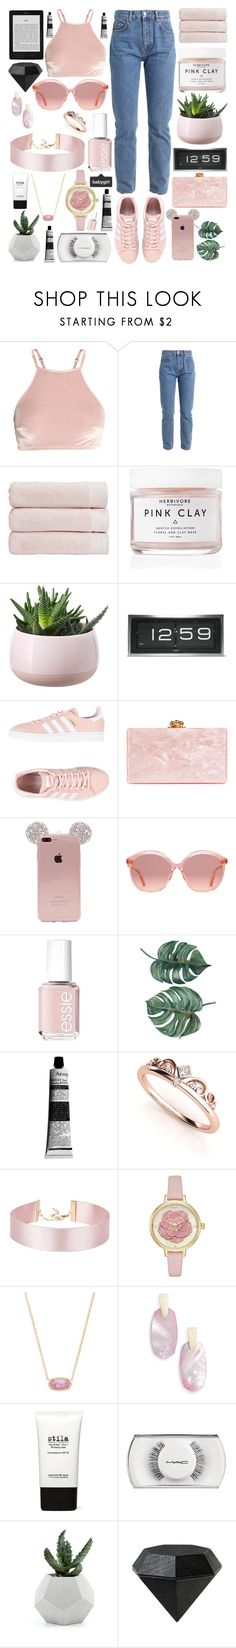 """""""be mine"""" by latte-x ❤ liked on Polyvore featuring Christy, Herbivore, LEFF Amsterdam, adidas Originals, Edie Parker, Gucci, Essie, Aesop, Kendra Scott and Stila"""